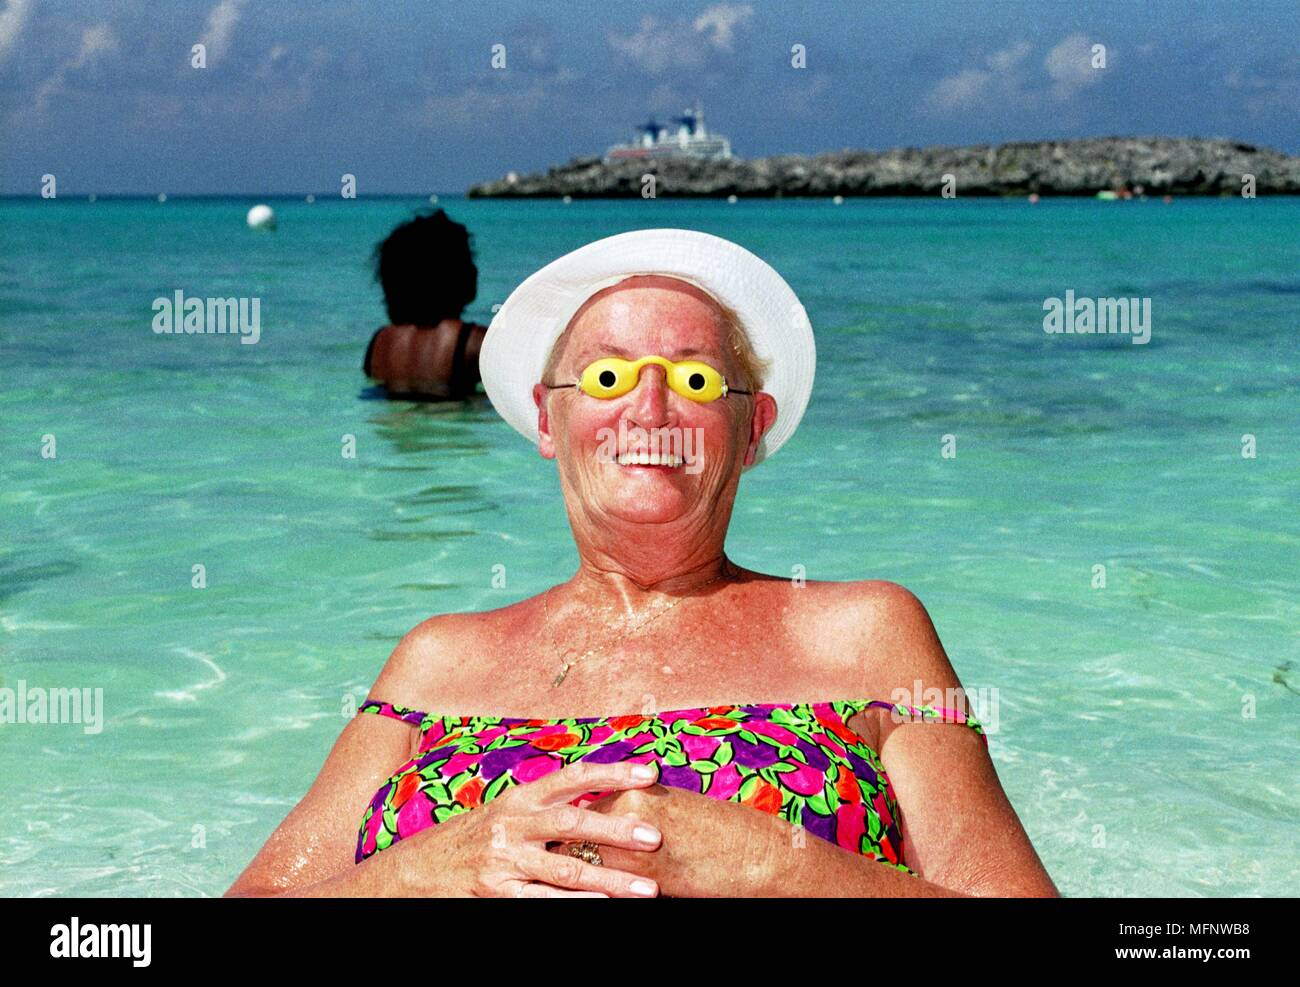 American cruiseship passenger wearing sun goggles on a cruiseline's private beach in The Bahamas.     Ref: CRB459_103533_0009  COMPULSORY CREDIT: Ian - Stock Image